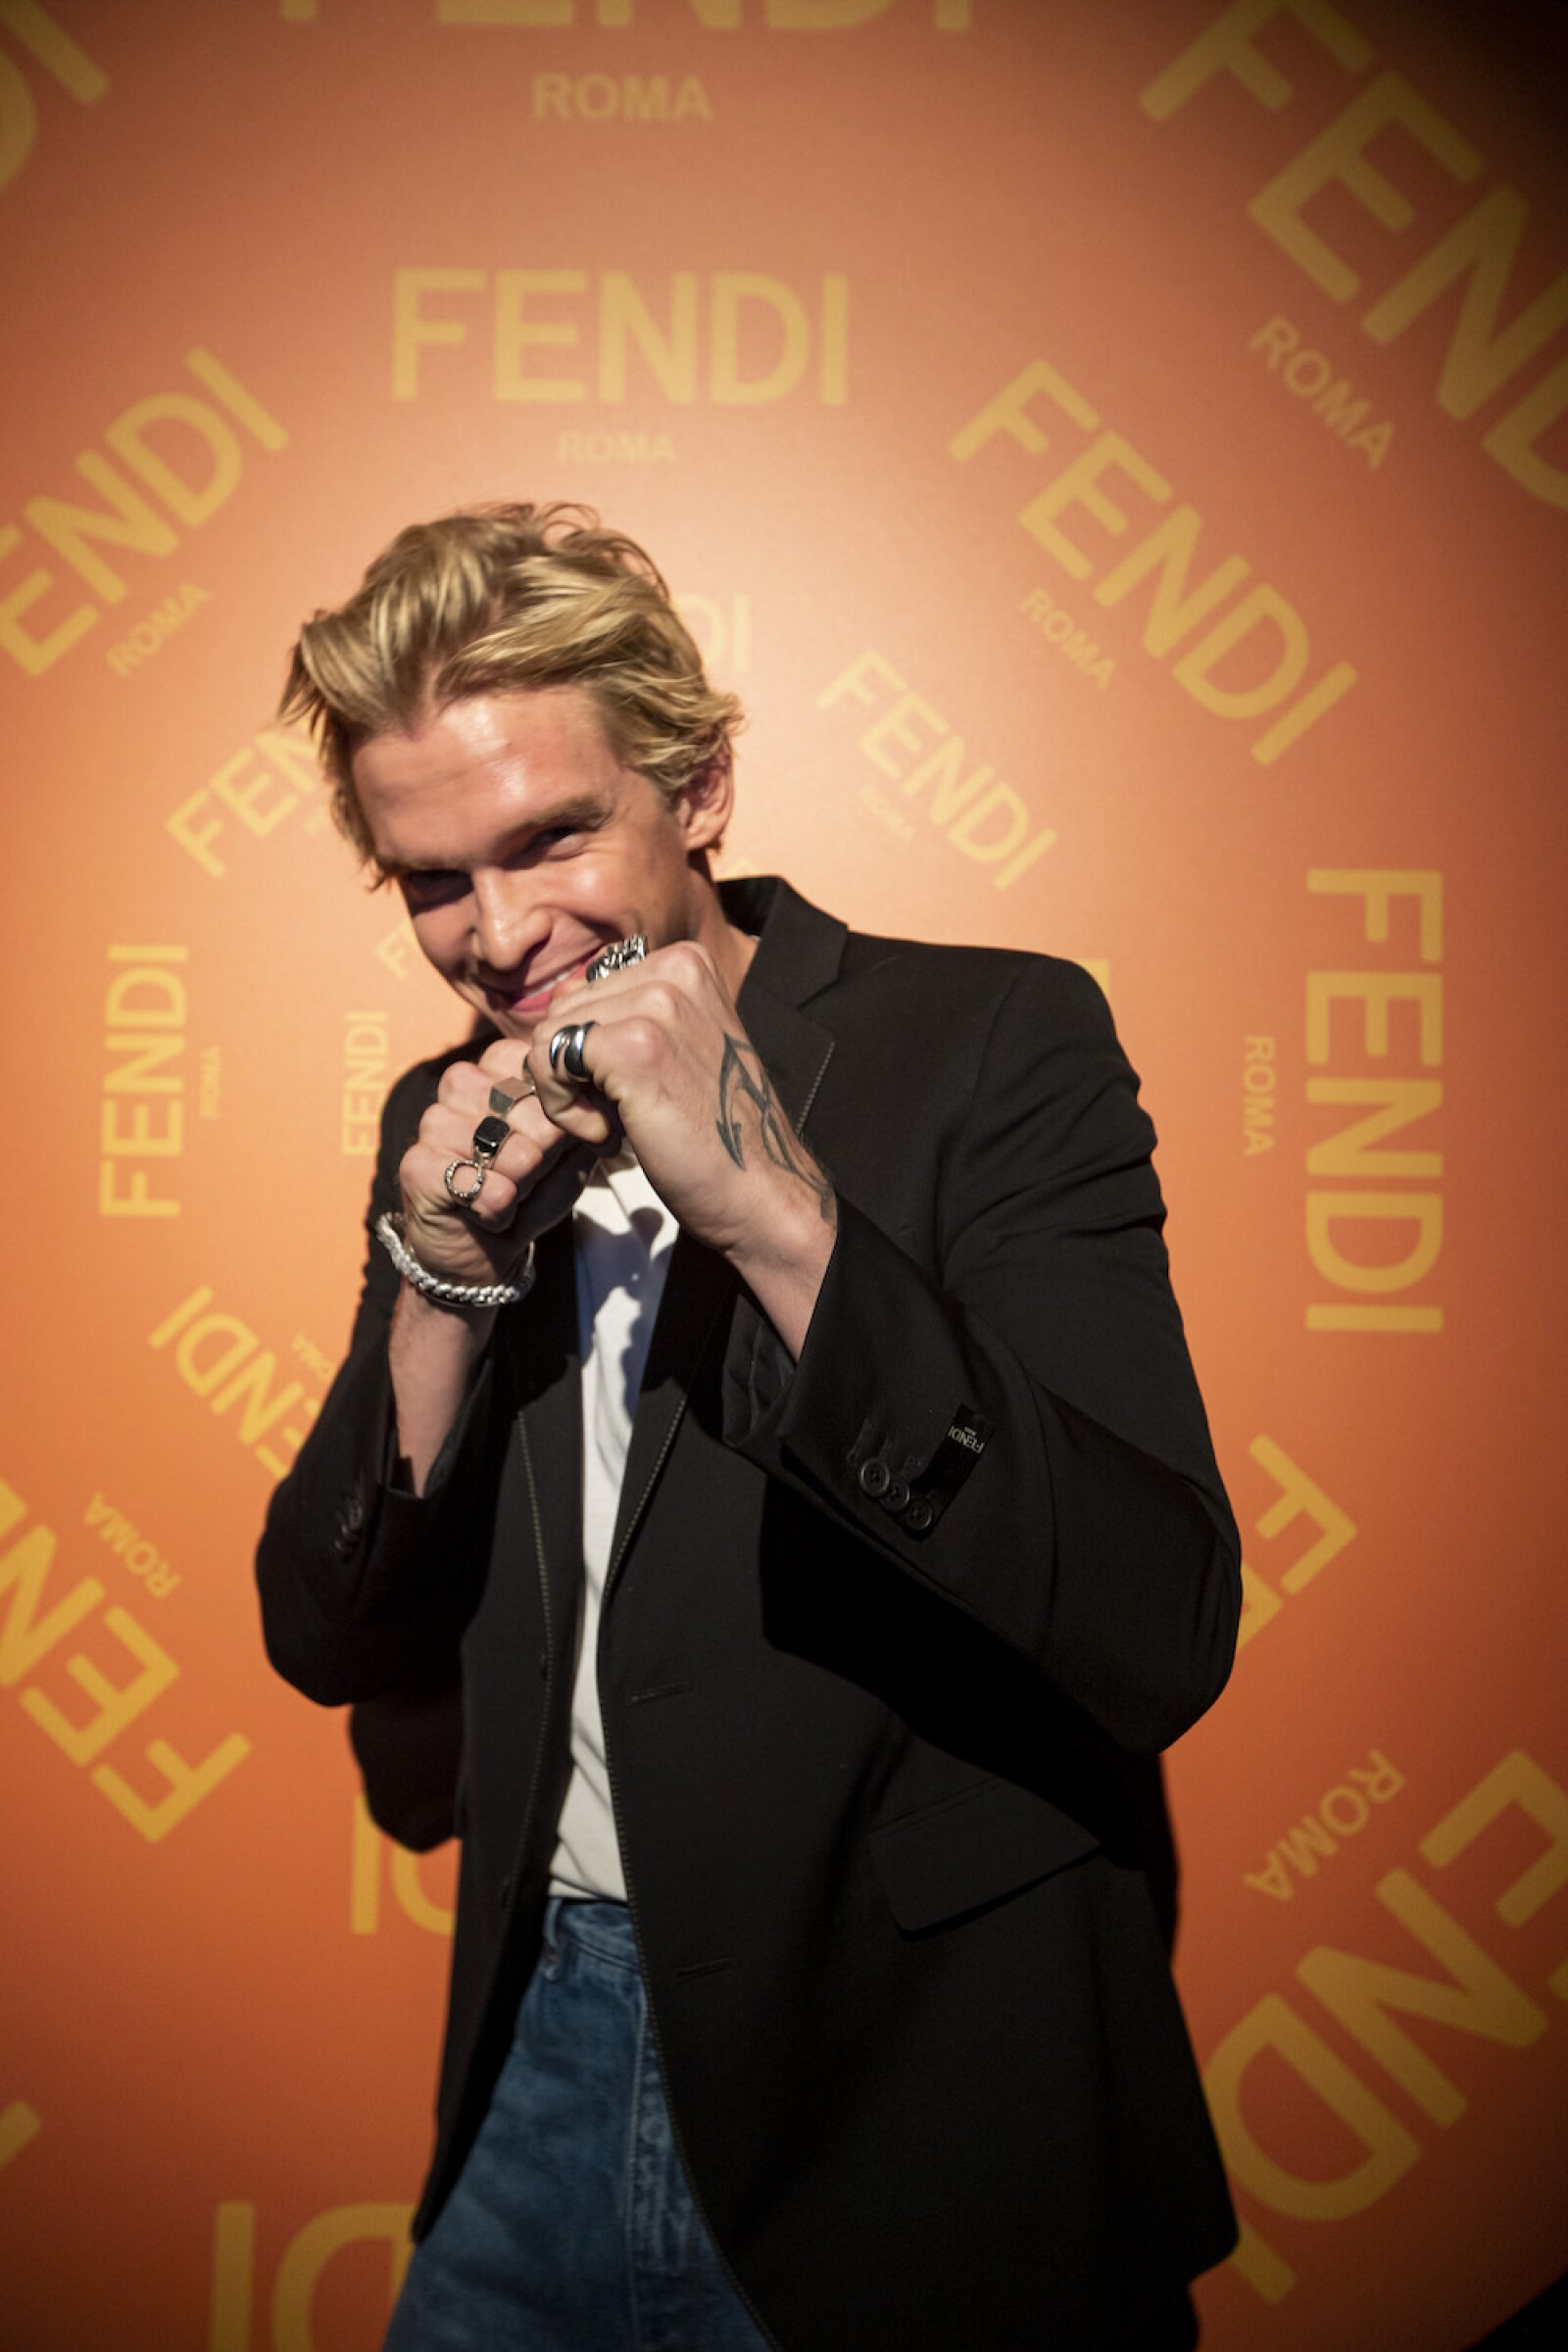 13_FendiSolarDream_Cody Simpson.JPG